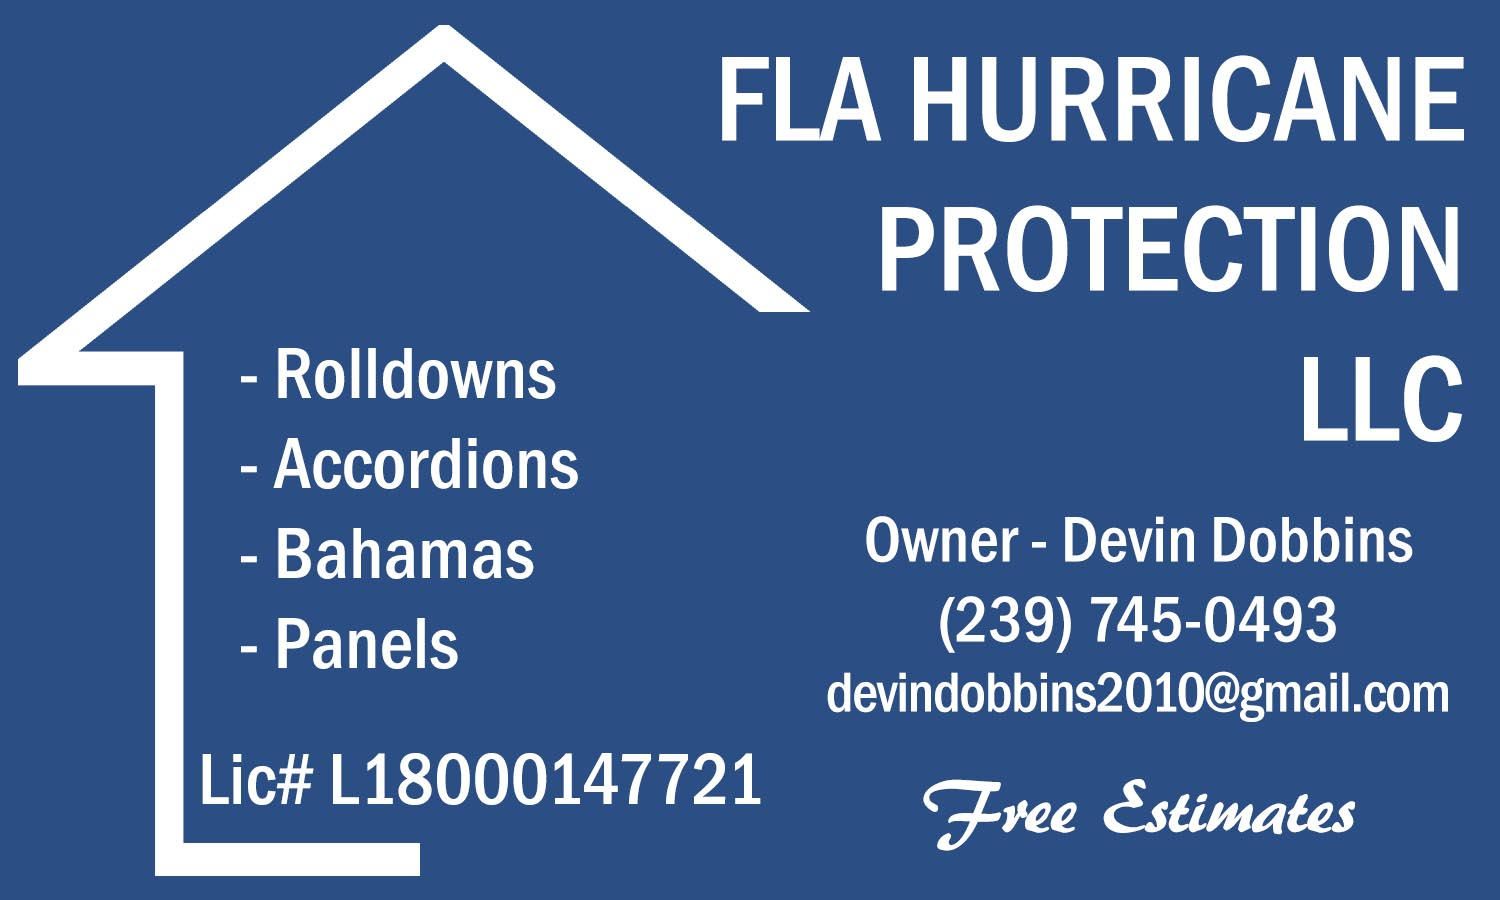 FLA Hurricane Protection logo